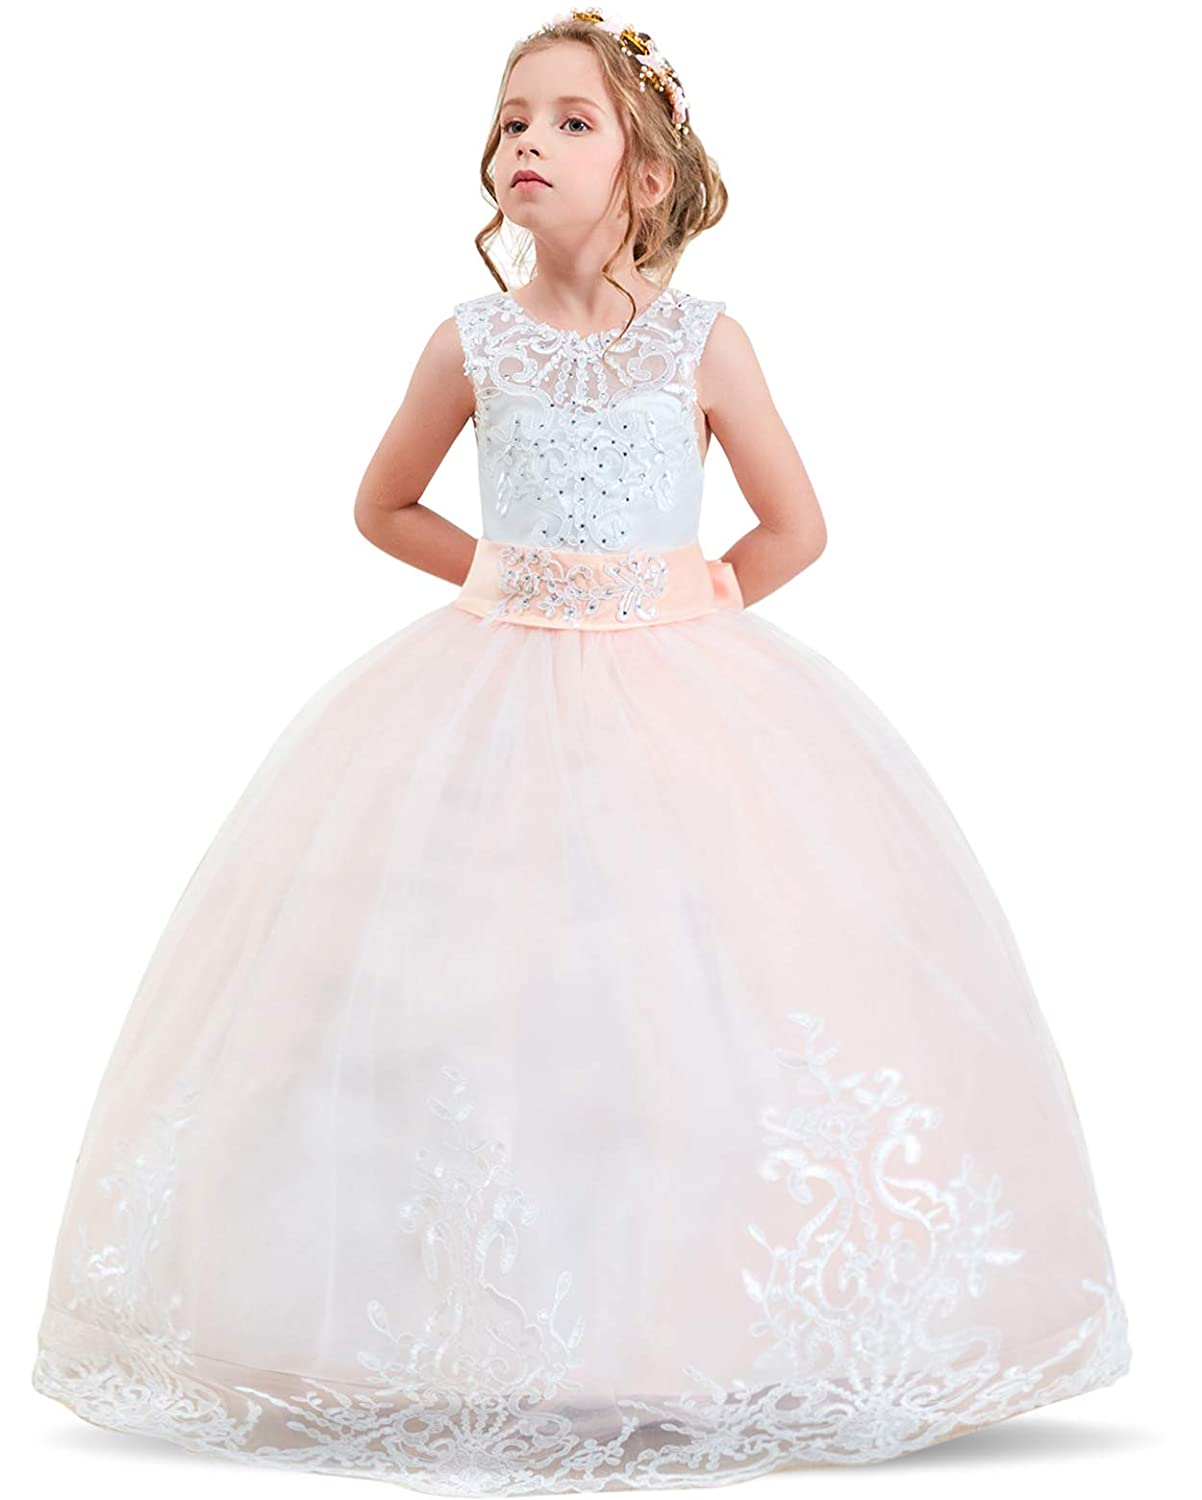 584dfe8af319 Amazon.com  NNJXD Girls Princess Pageant Dress Kids Prom Ball Gowns ...